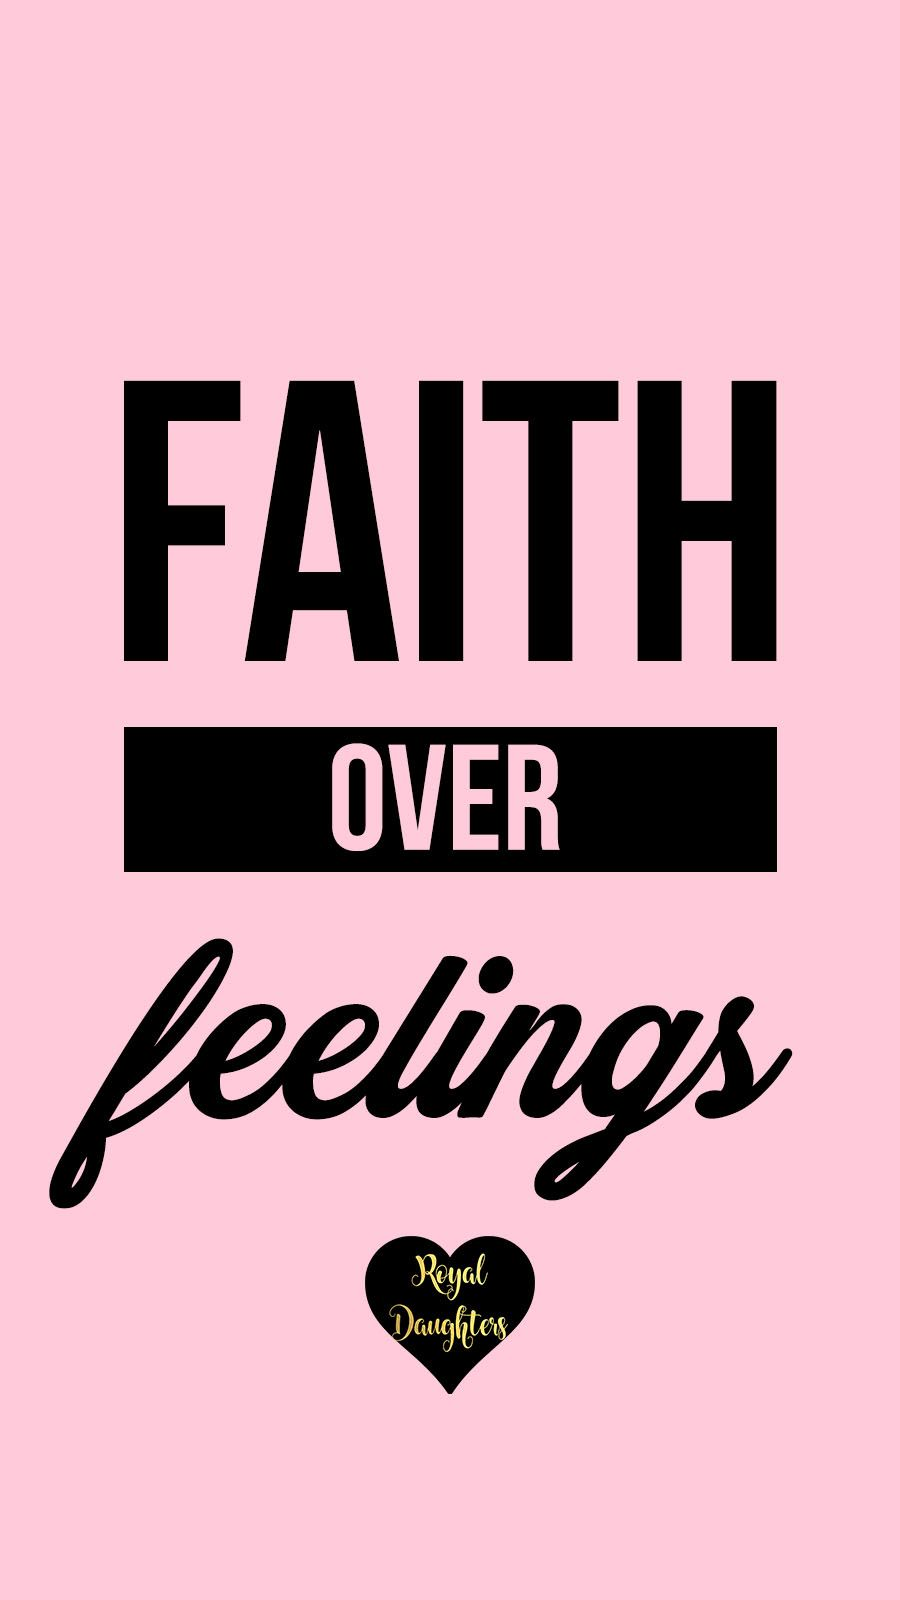 Inspirational Quote Phone Wallpaper Christian Lockscreen Girly For IPhone Faith Over Feelings